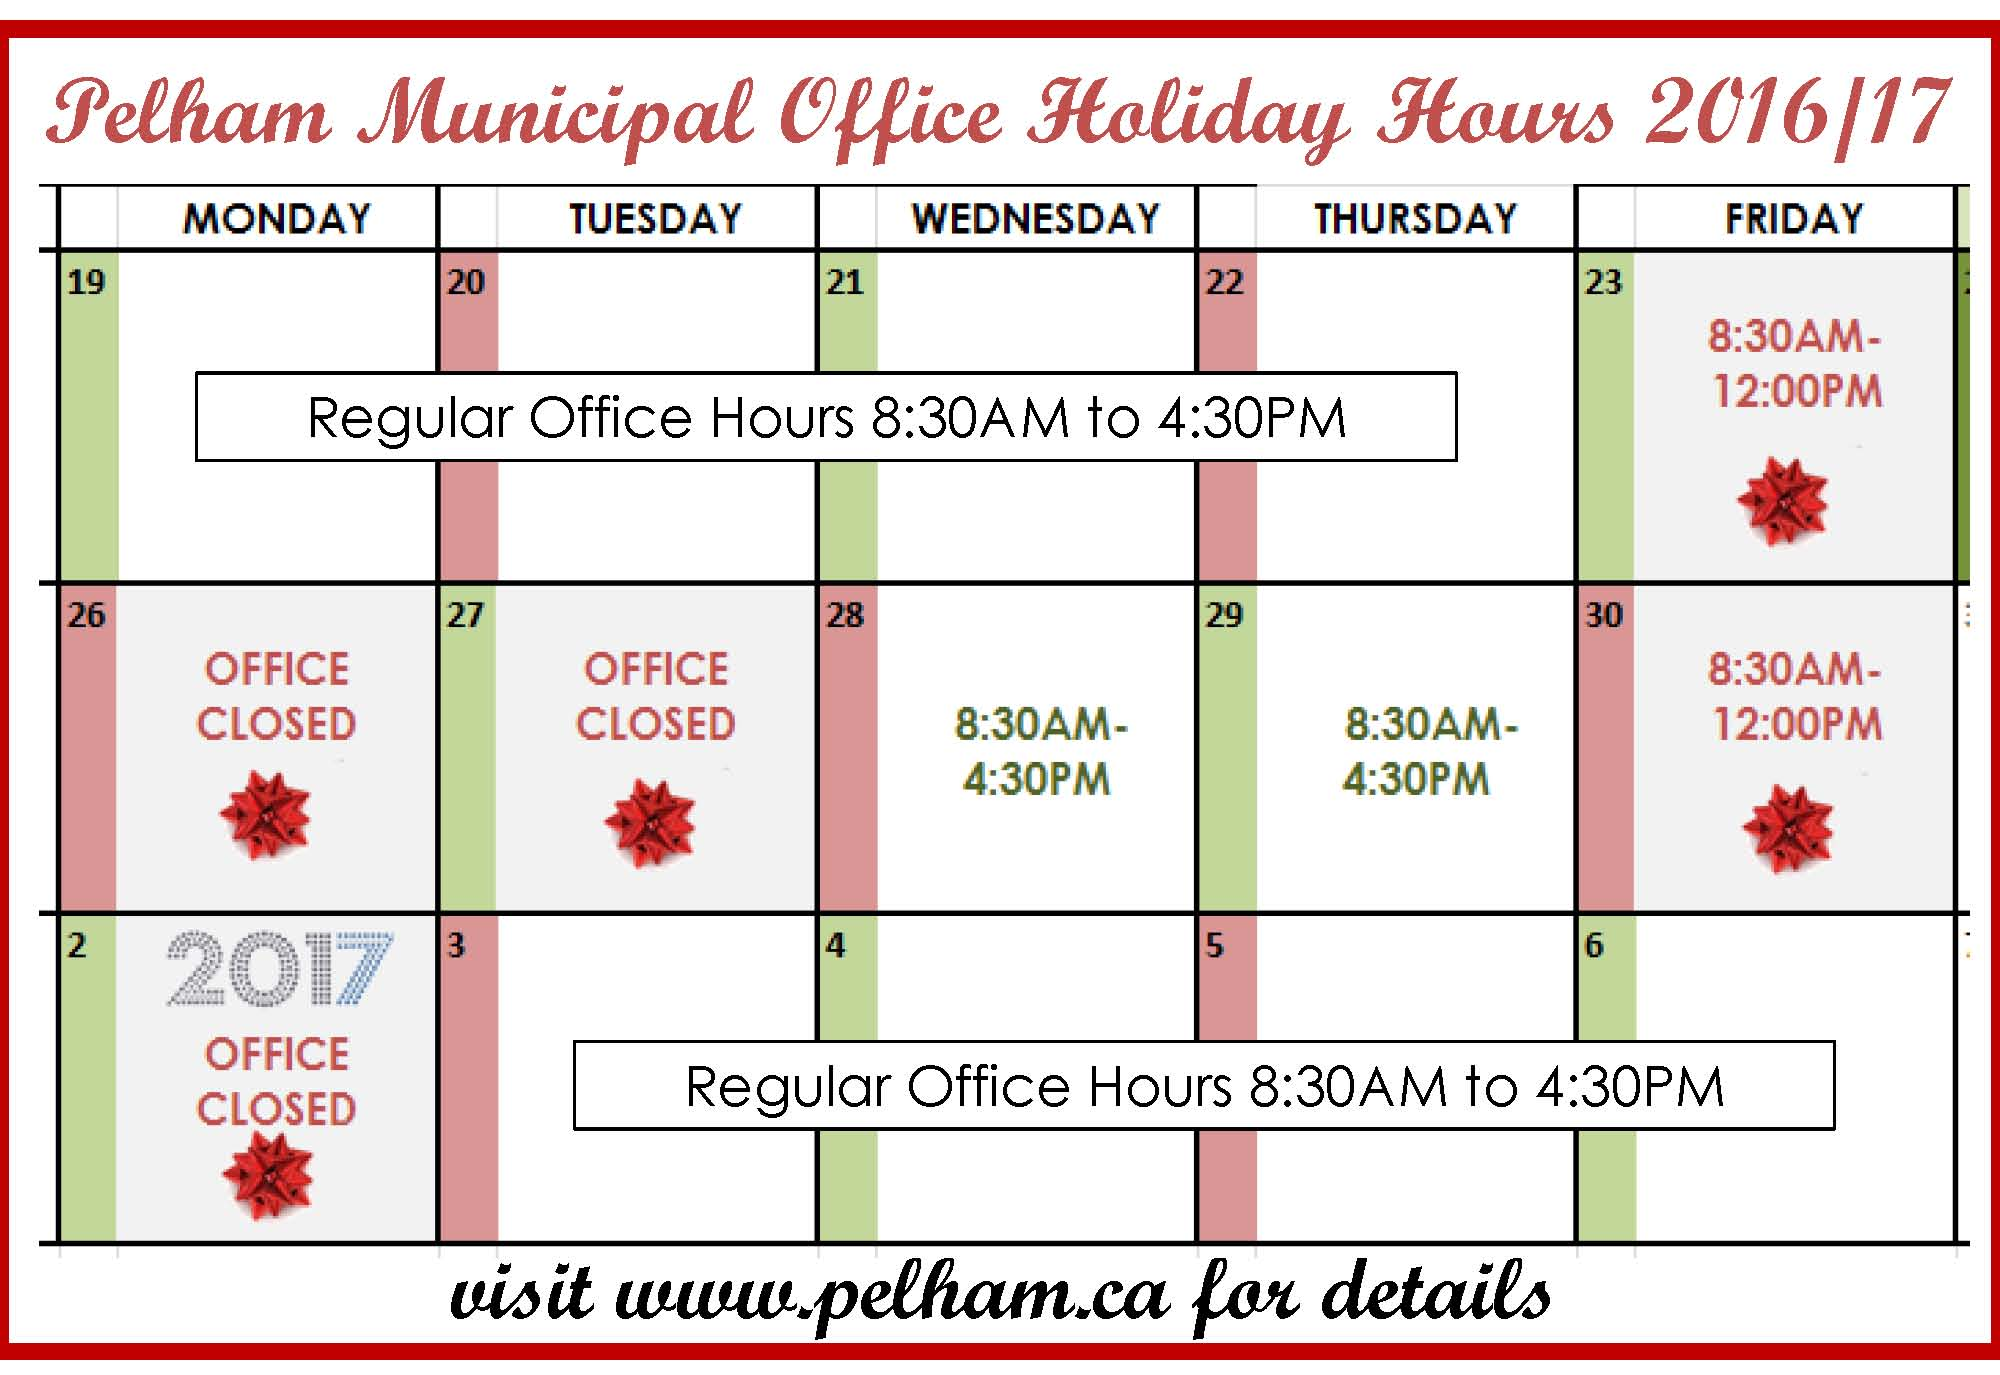 Municipal Office Holiday Hours 2016/17